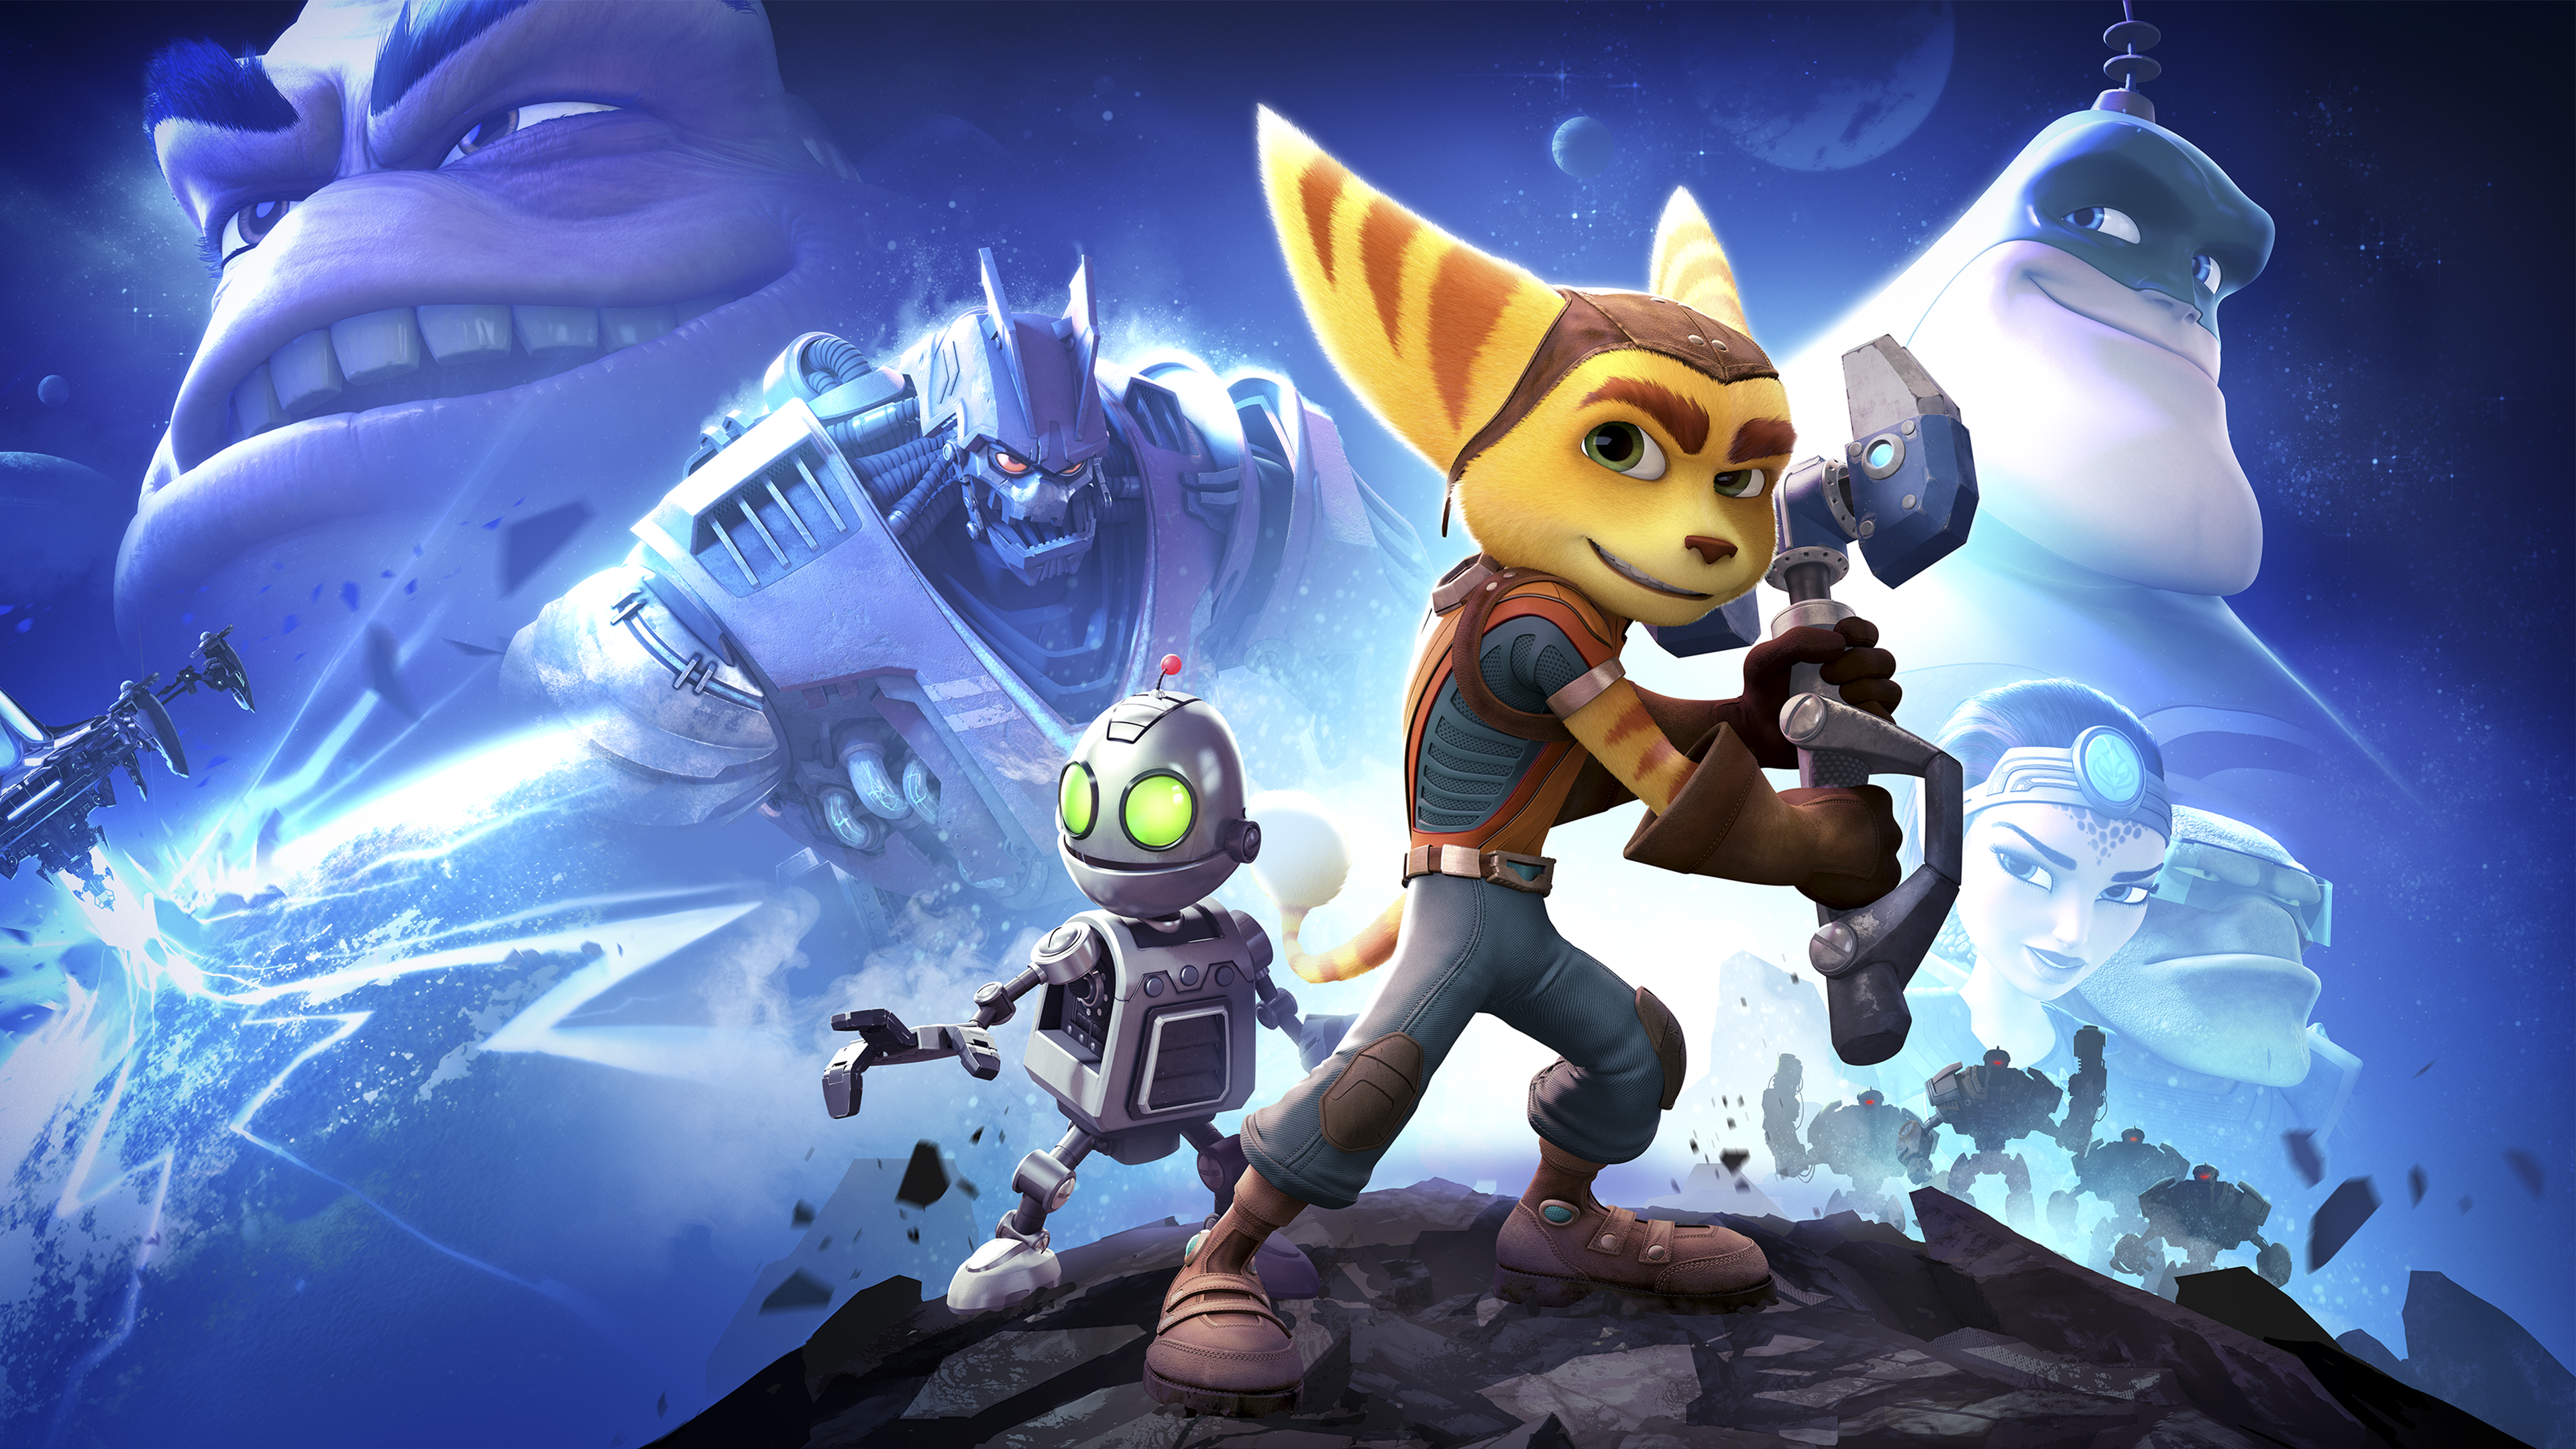 ratchet and clank hero